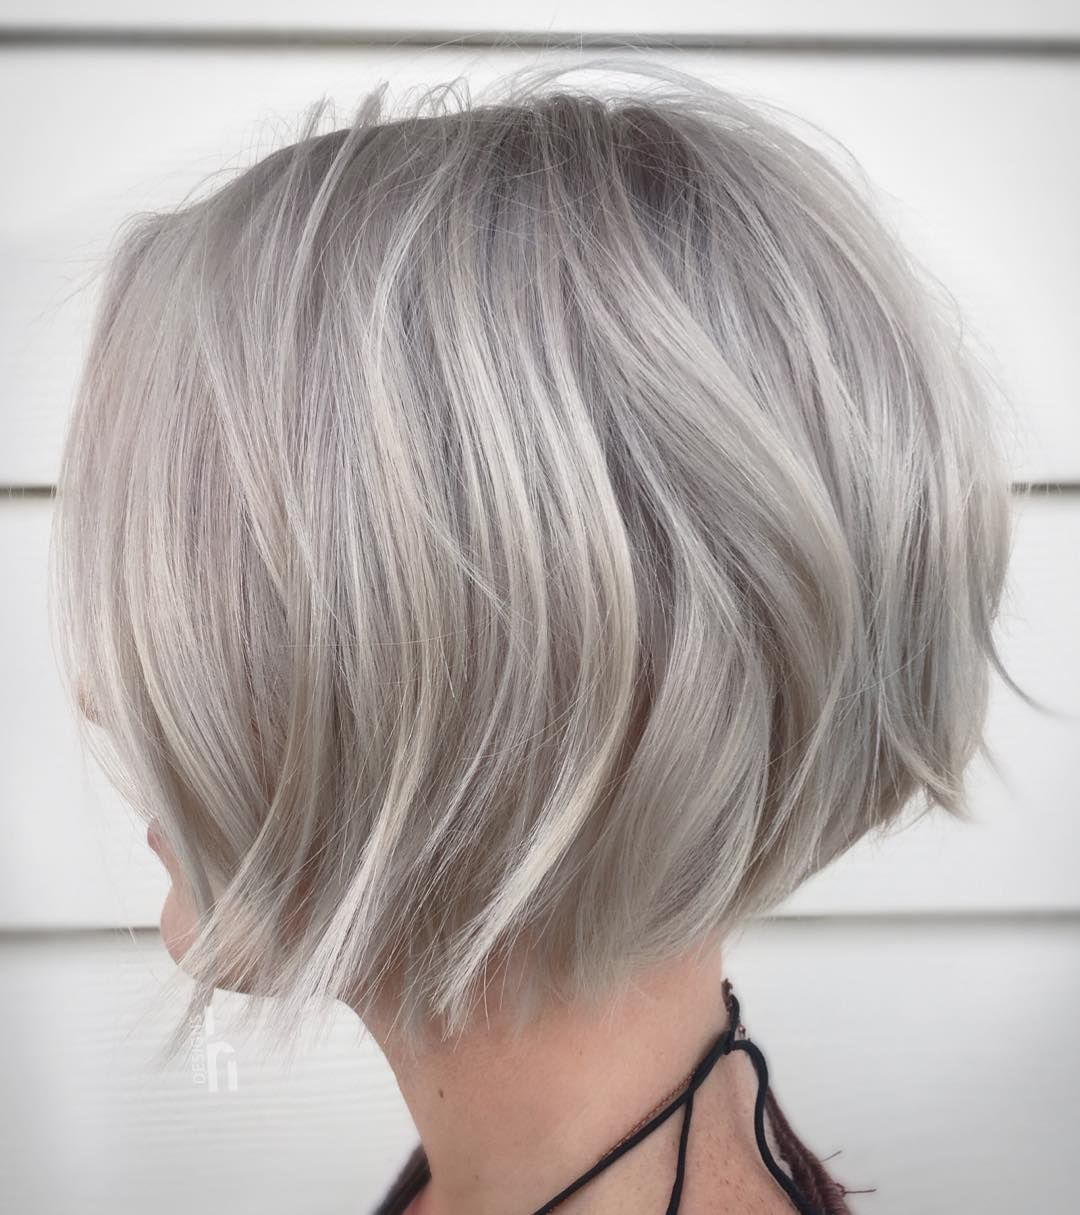 Chic Medium Bob Haircut For Women Shoulder Length Bob Hairstyle Designs Medium Bob Haircut Haircuts For Medium Hair Thick Hair Styles